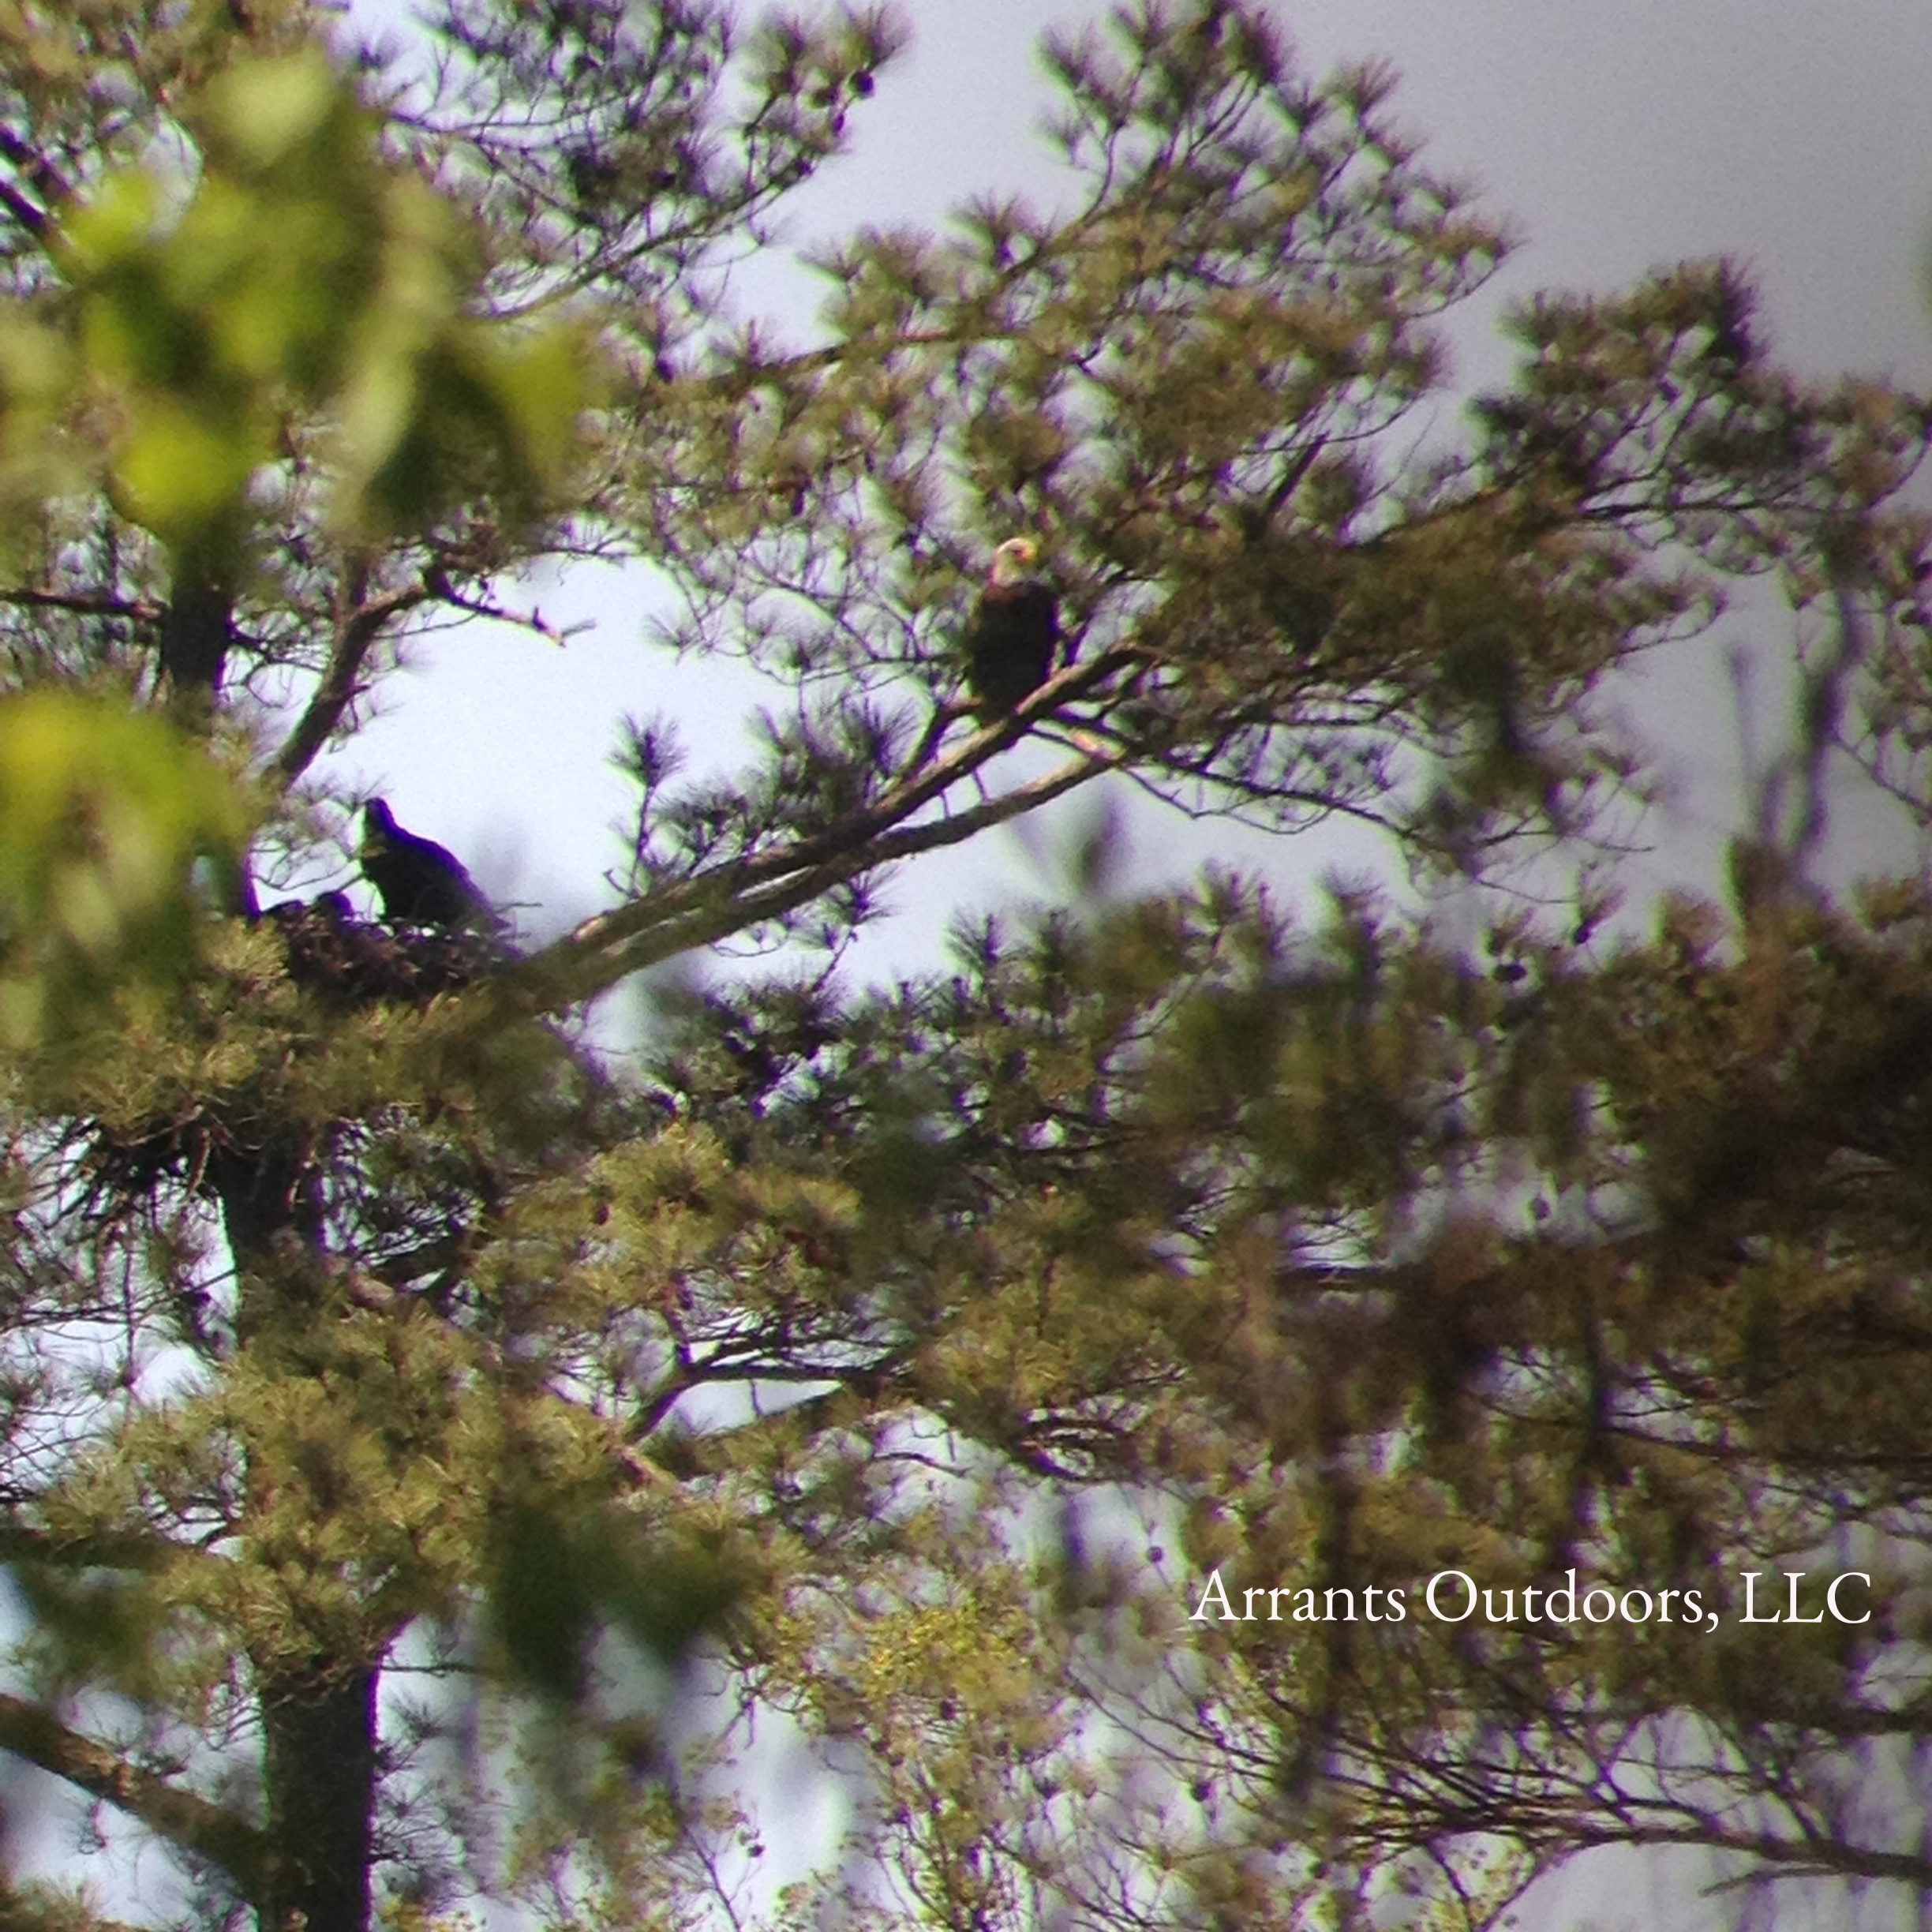 Adult Bald Eagle sits alert out on a limb, while two nestlings (one sits on the rim of the nest and one sits down inside the nest) wait for the other adult to bring the next meal. I watched the nestlings exercising their wings before the photo was taken. They fledged four weeks later, taking to the sky with the adults. Photo taken 4/12/12